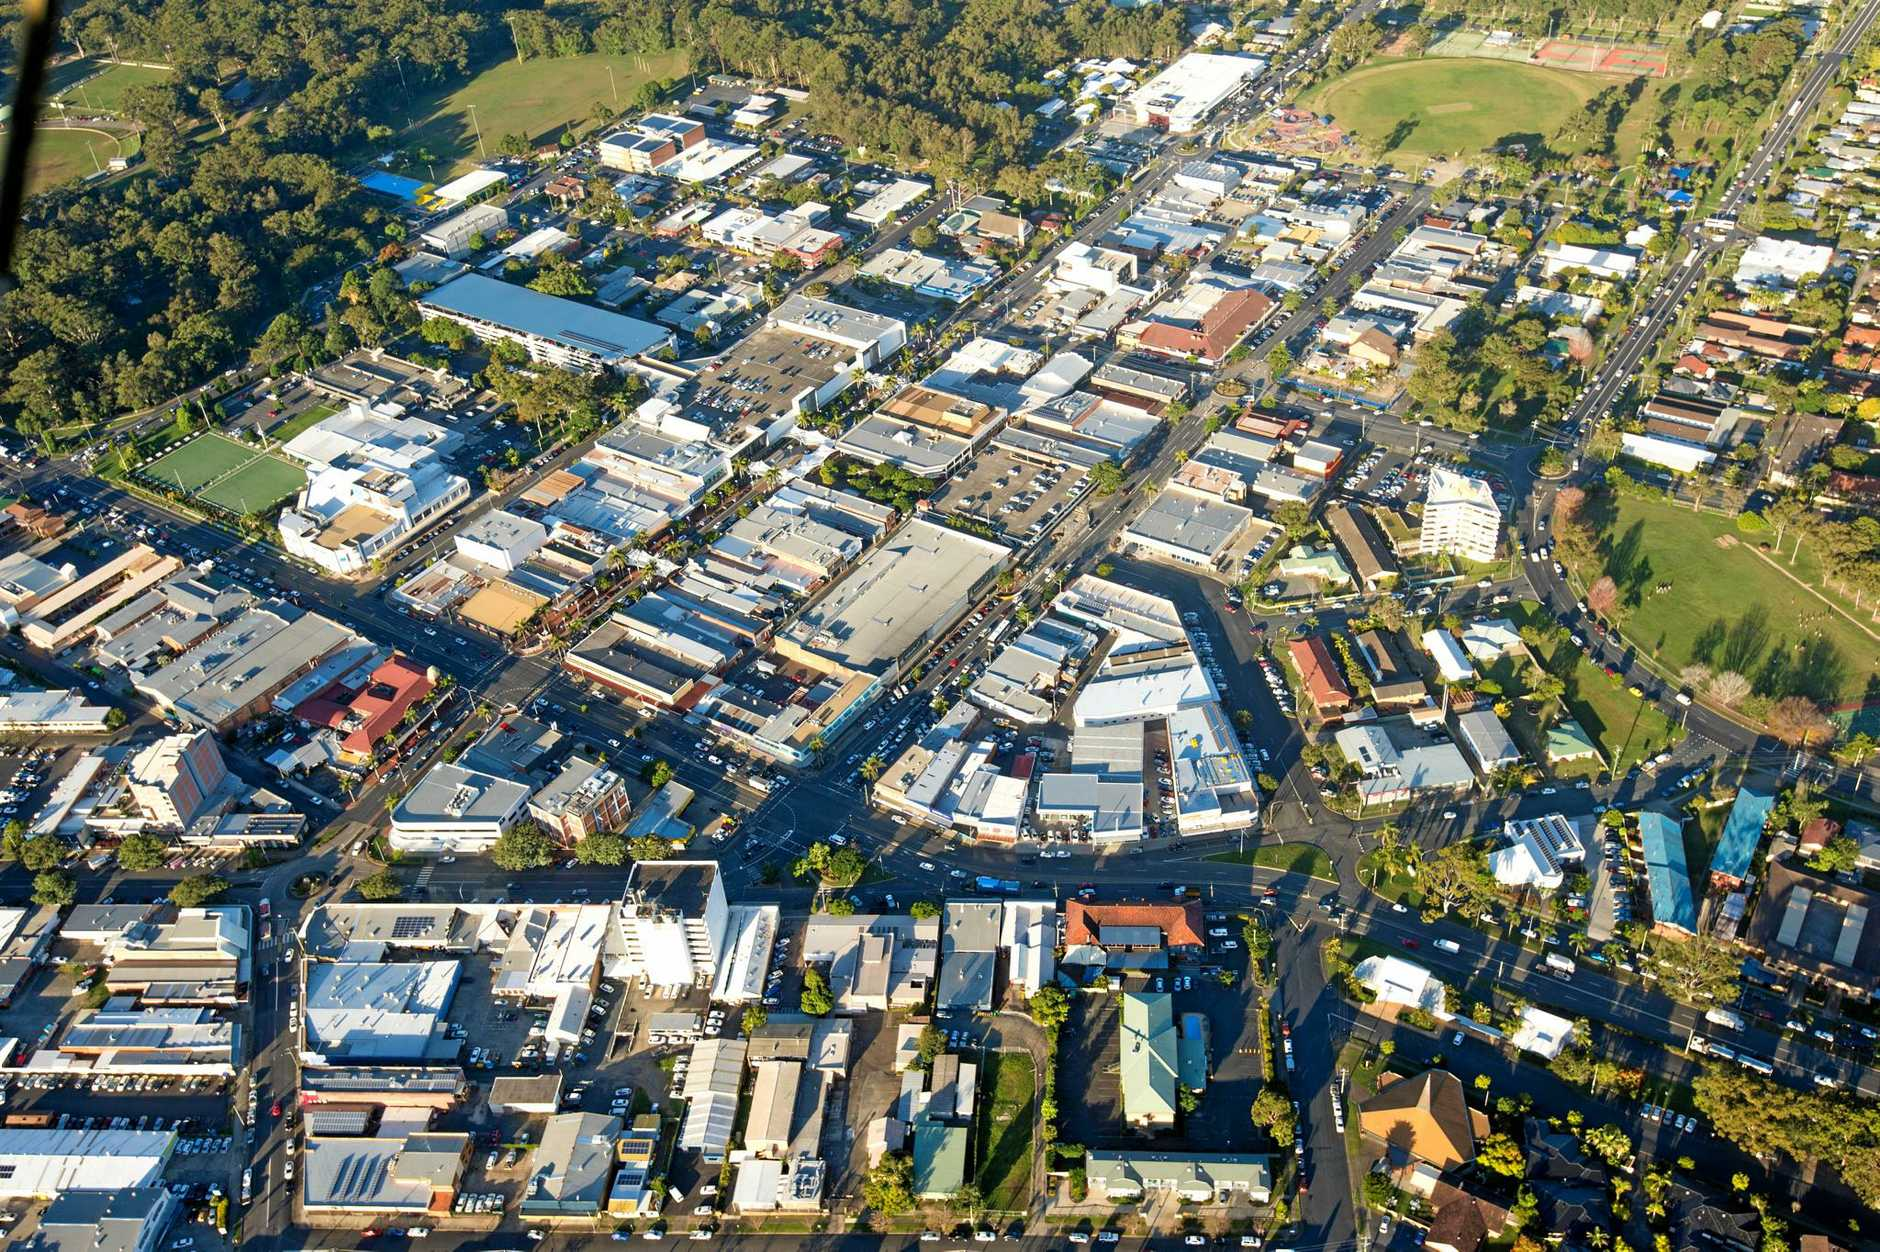 Coffs Harbour city centre aerial. 14 AUG 2015